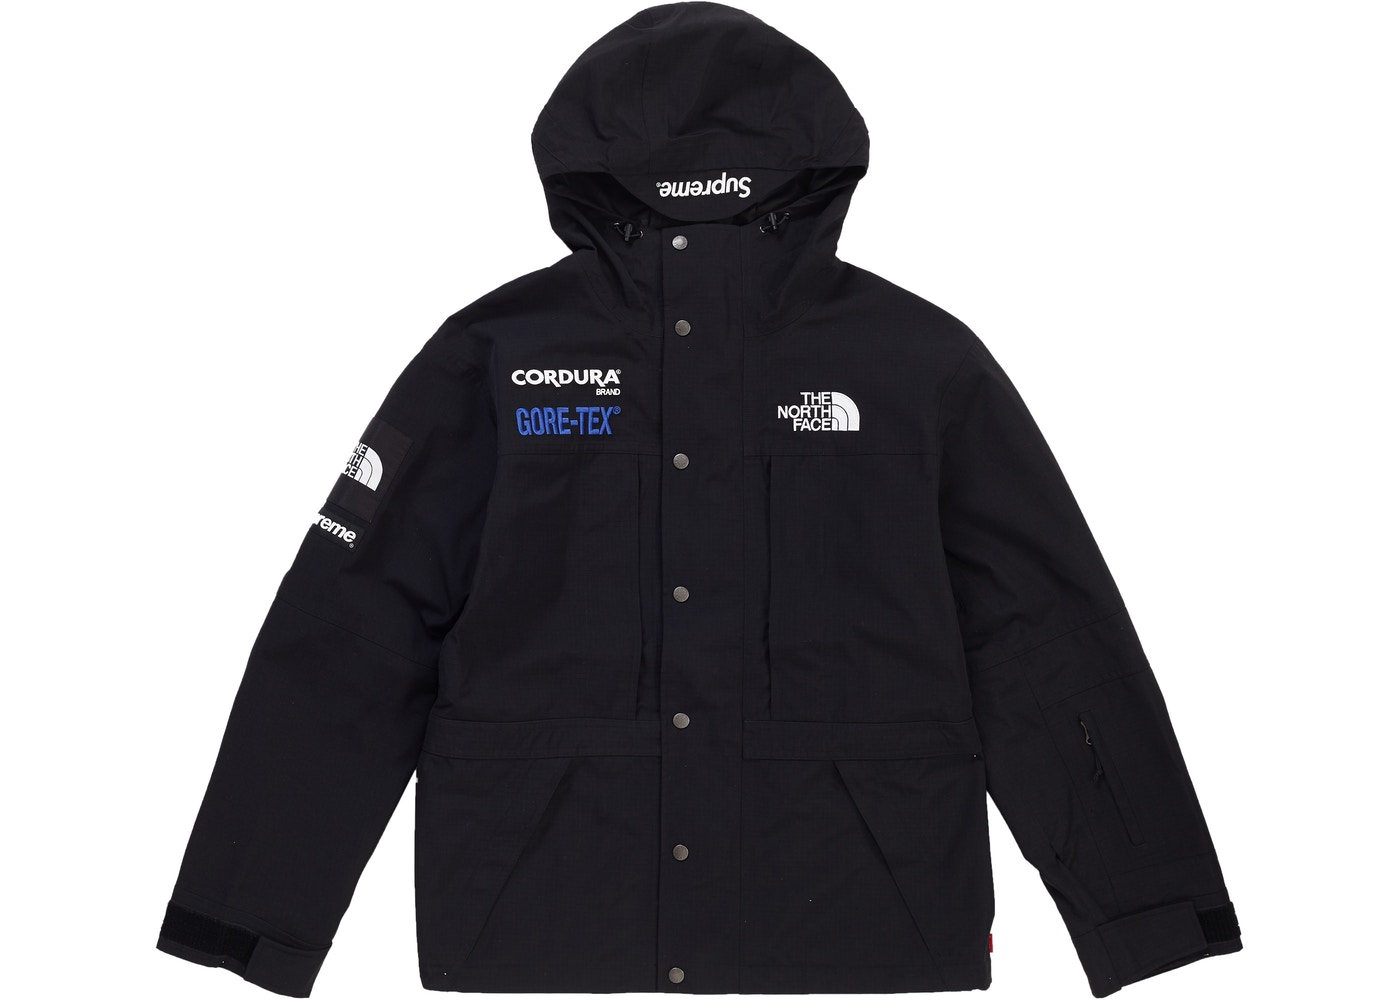 de0beeadb Supreme The North Face Expedition (FW18) Jacket Black